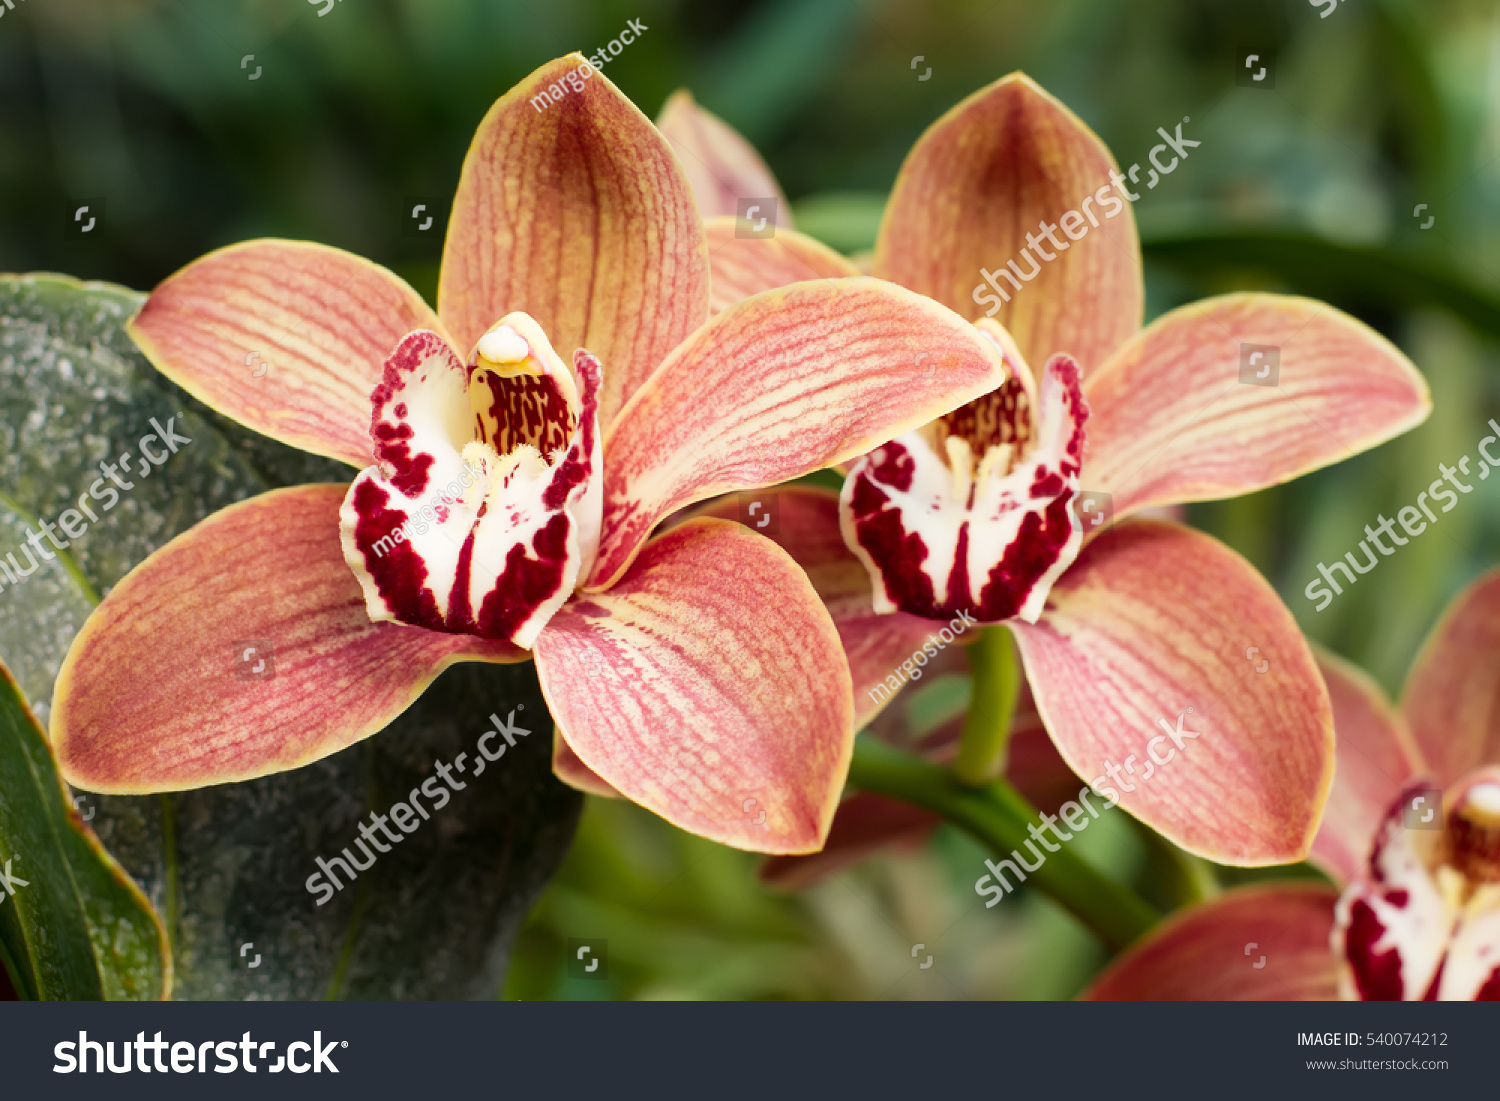 Rare orchid flowers beautiful orchid flowers stock photo edit now rare orchid flowers beautiful orchid flowers izmirmasajfo